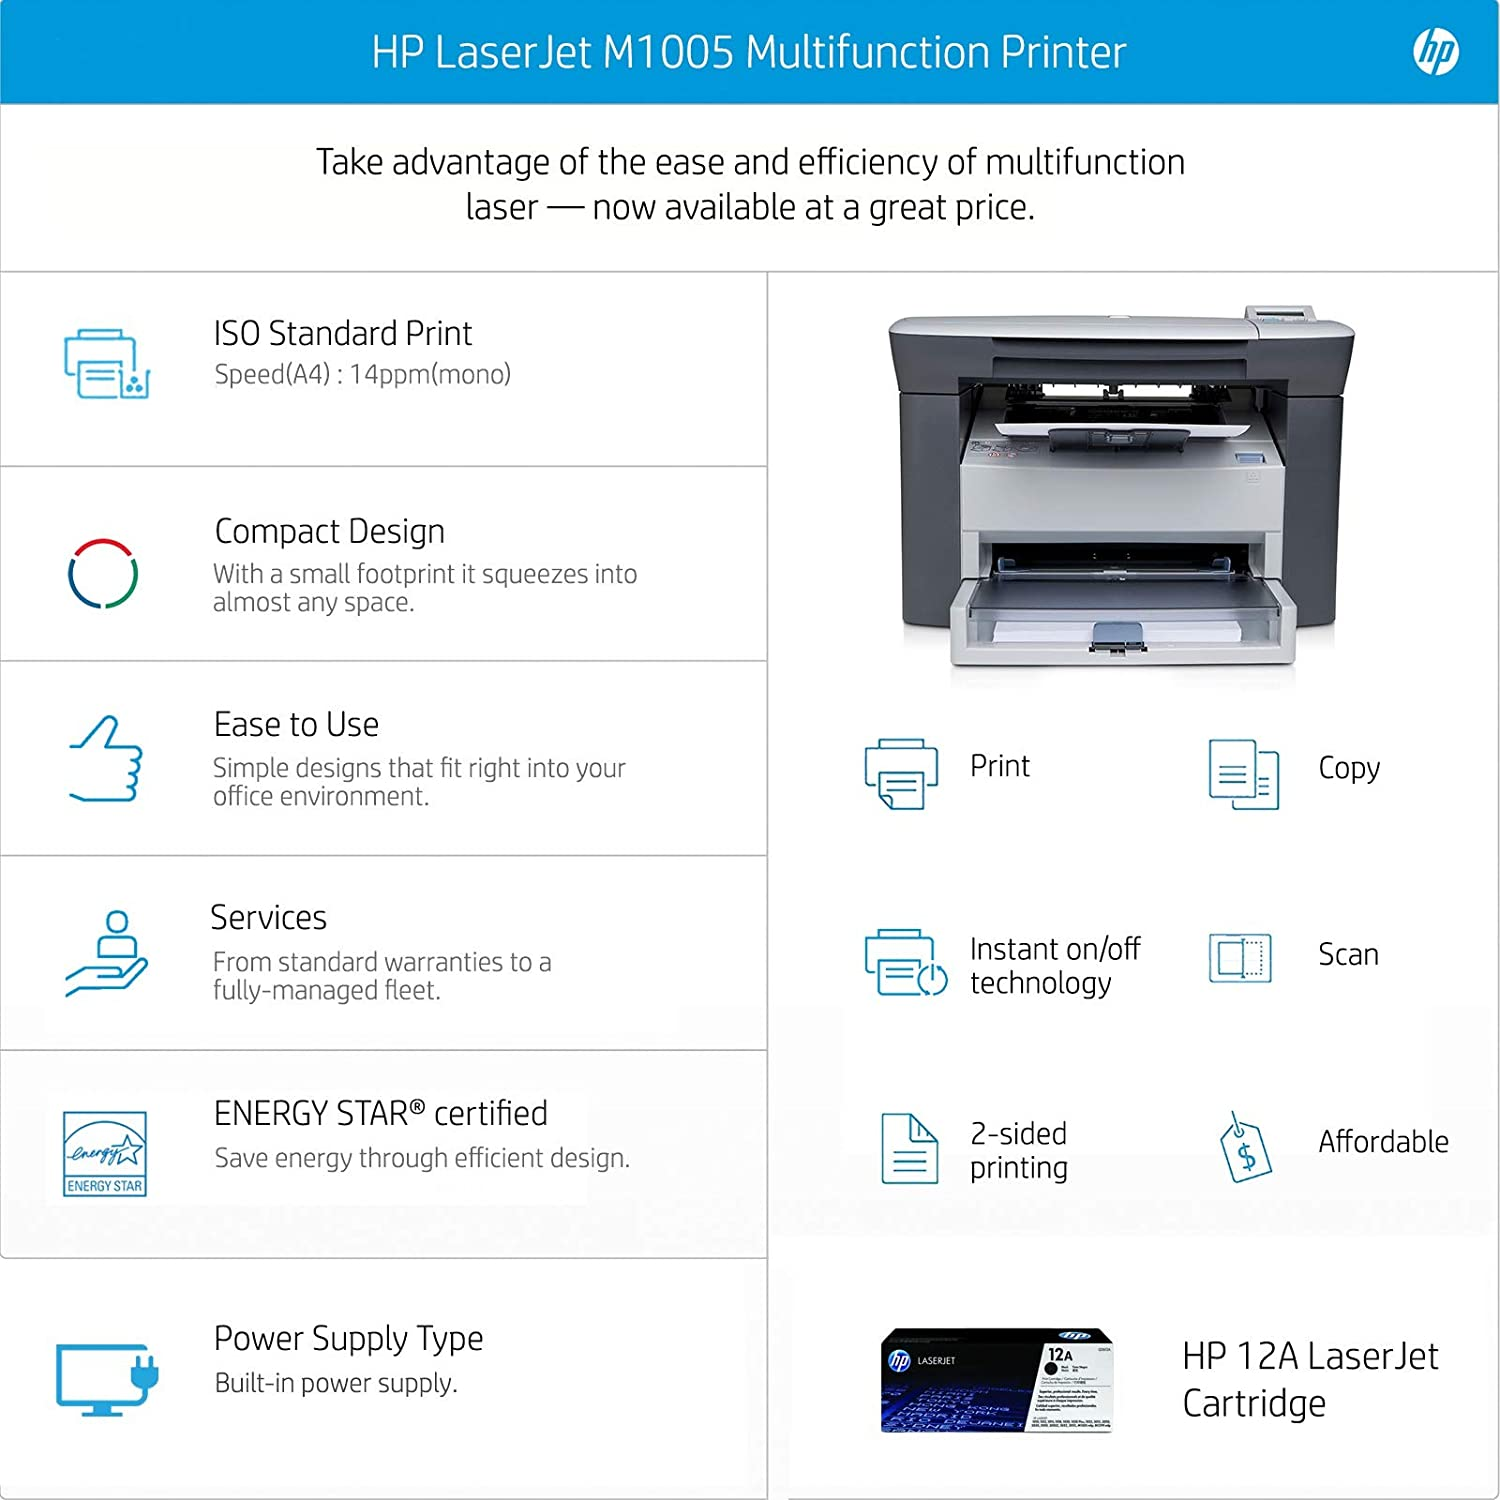 hp m1005 printer scanner software